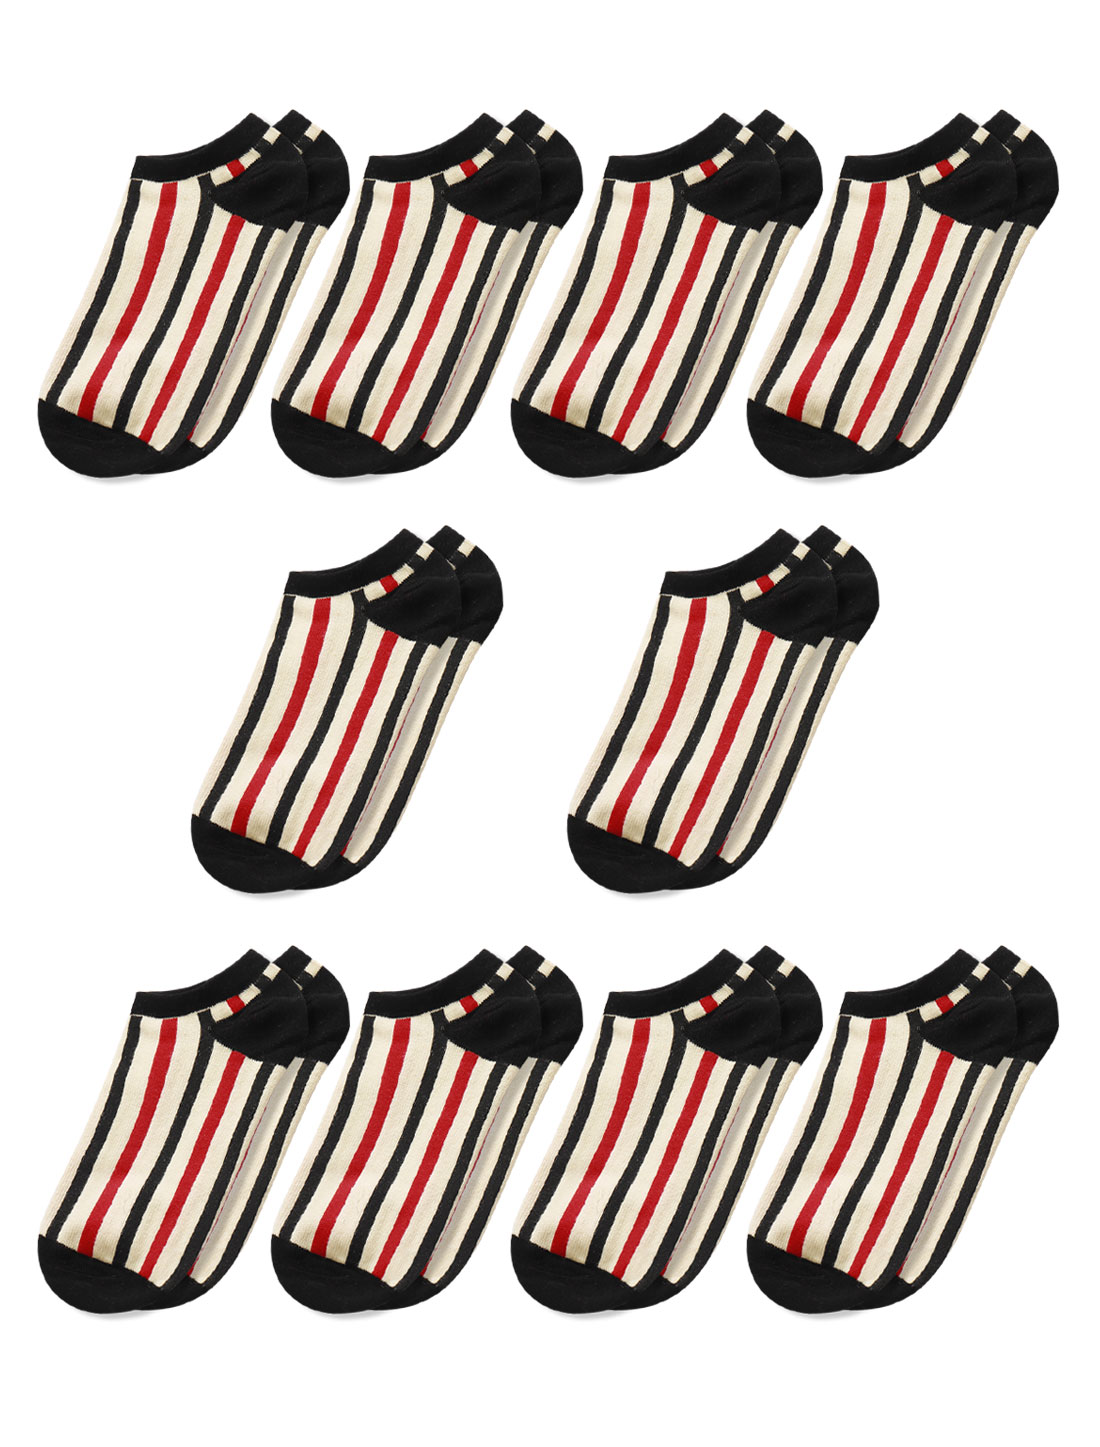 Men Low Cut Stripes Ankle Length Short Socks 10 Pairs Black Red M